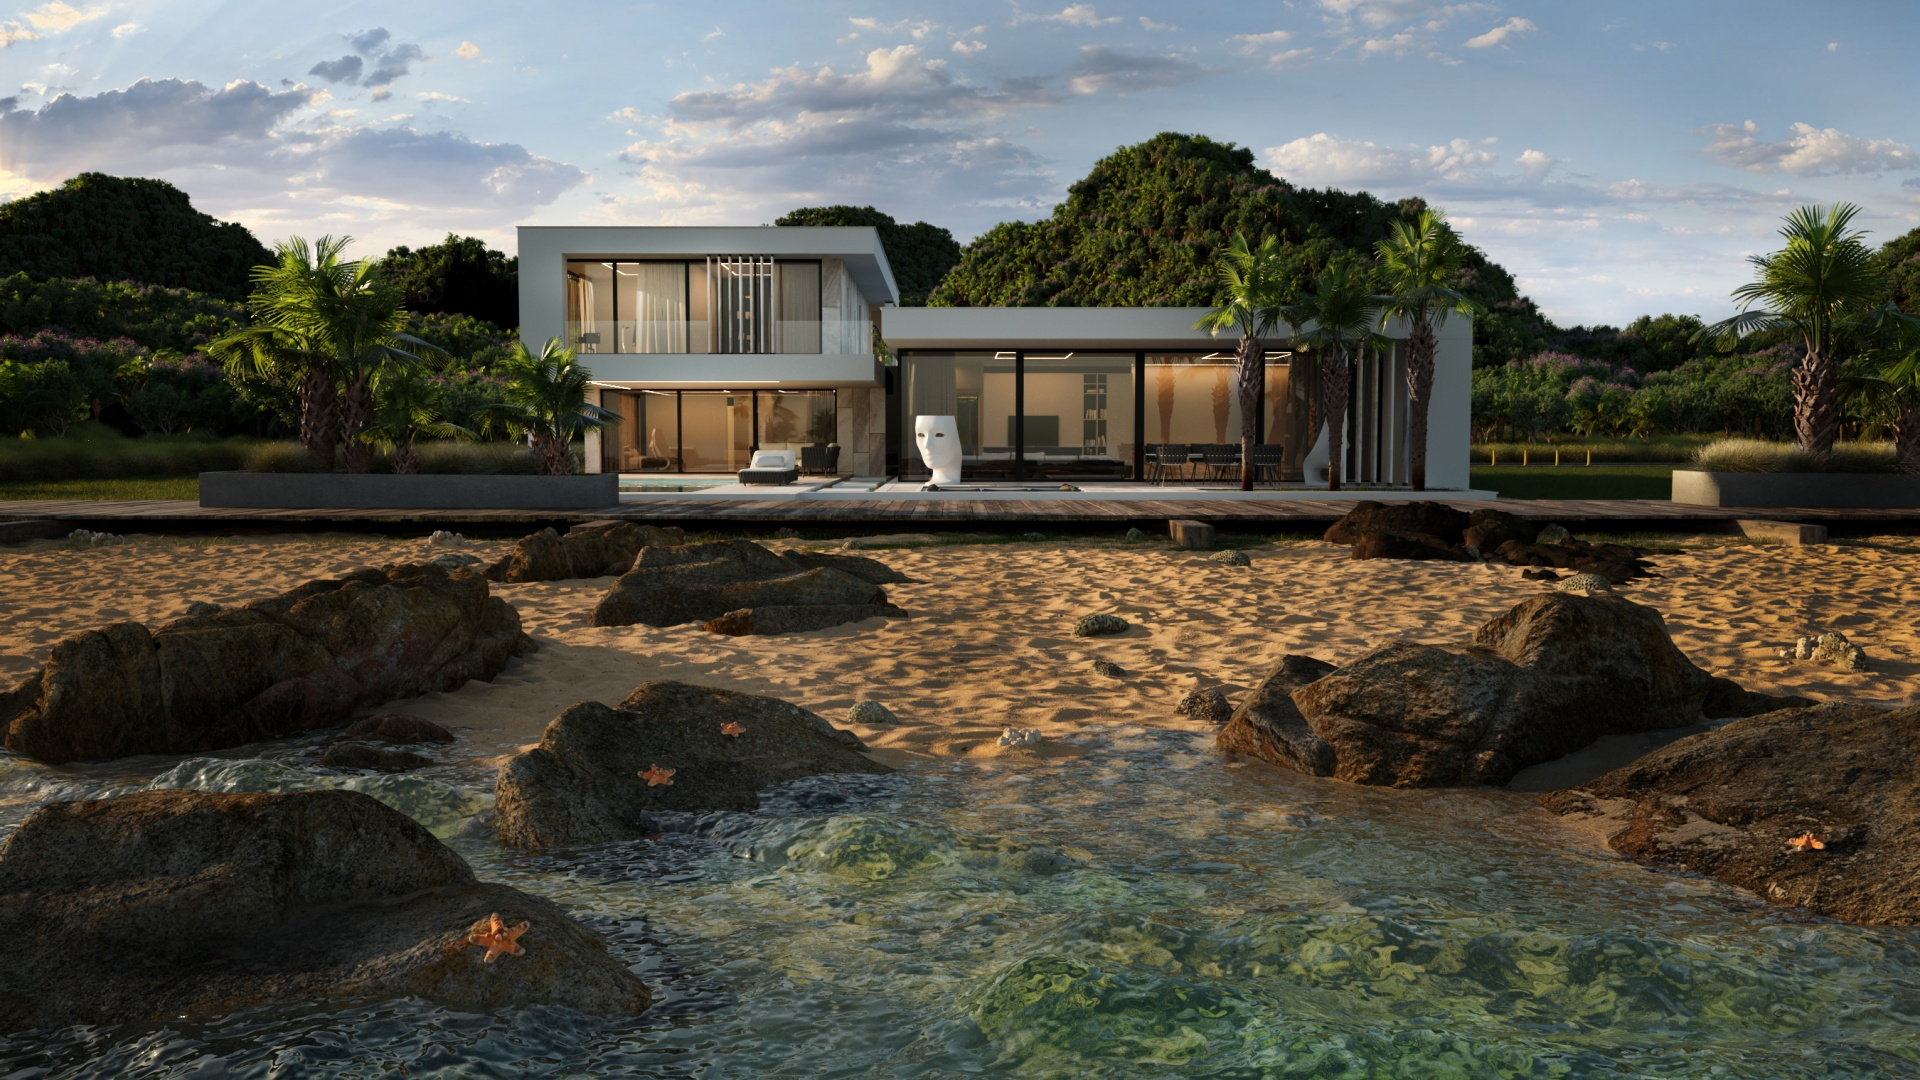 RE: MALIBU HOUSE projektu architekta Marcina Tomaszewskiego REFORM Architekt